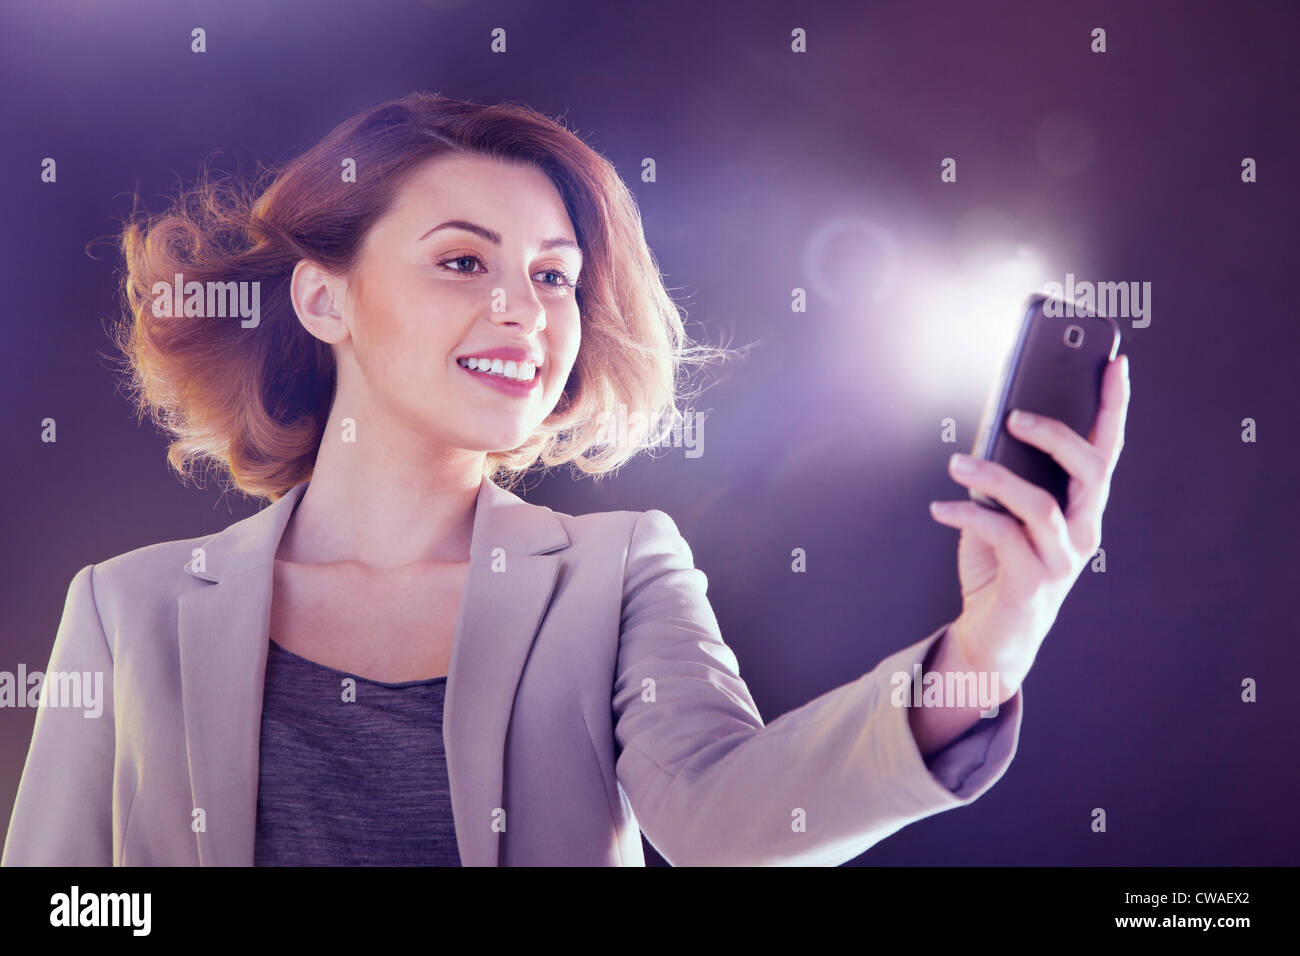 Young woman looking at cellphone with lights - Stock Image